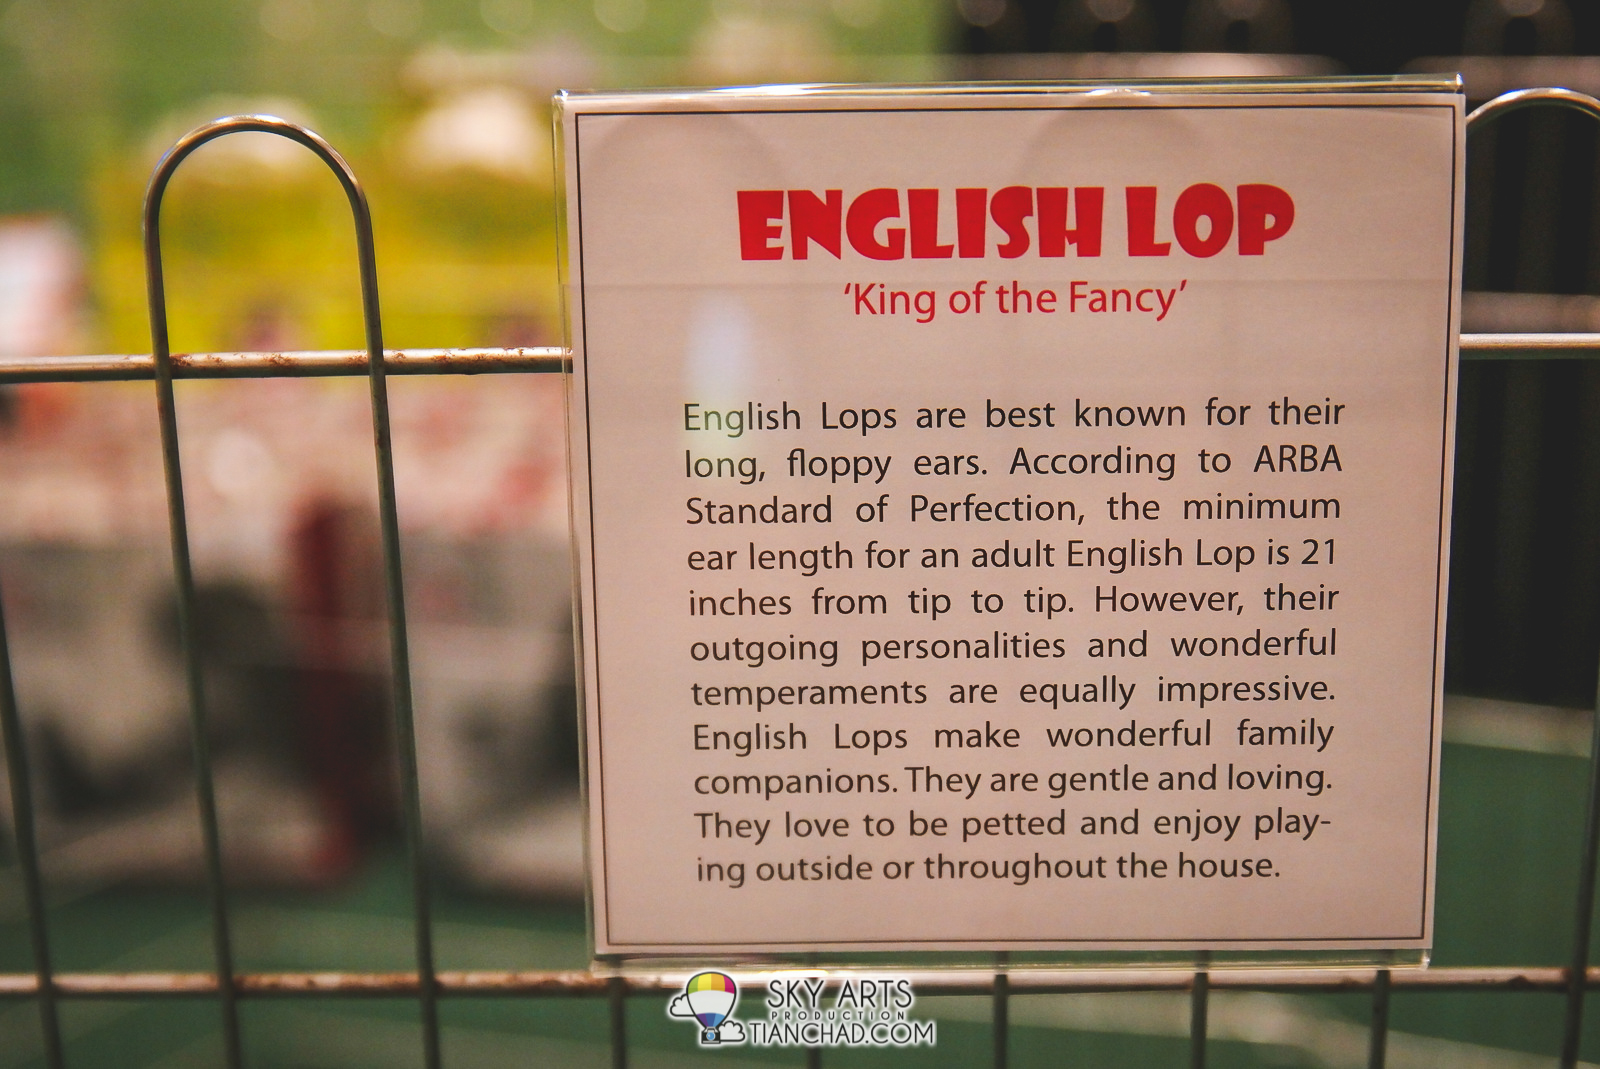 Description for English Lop